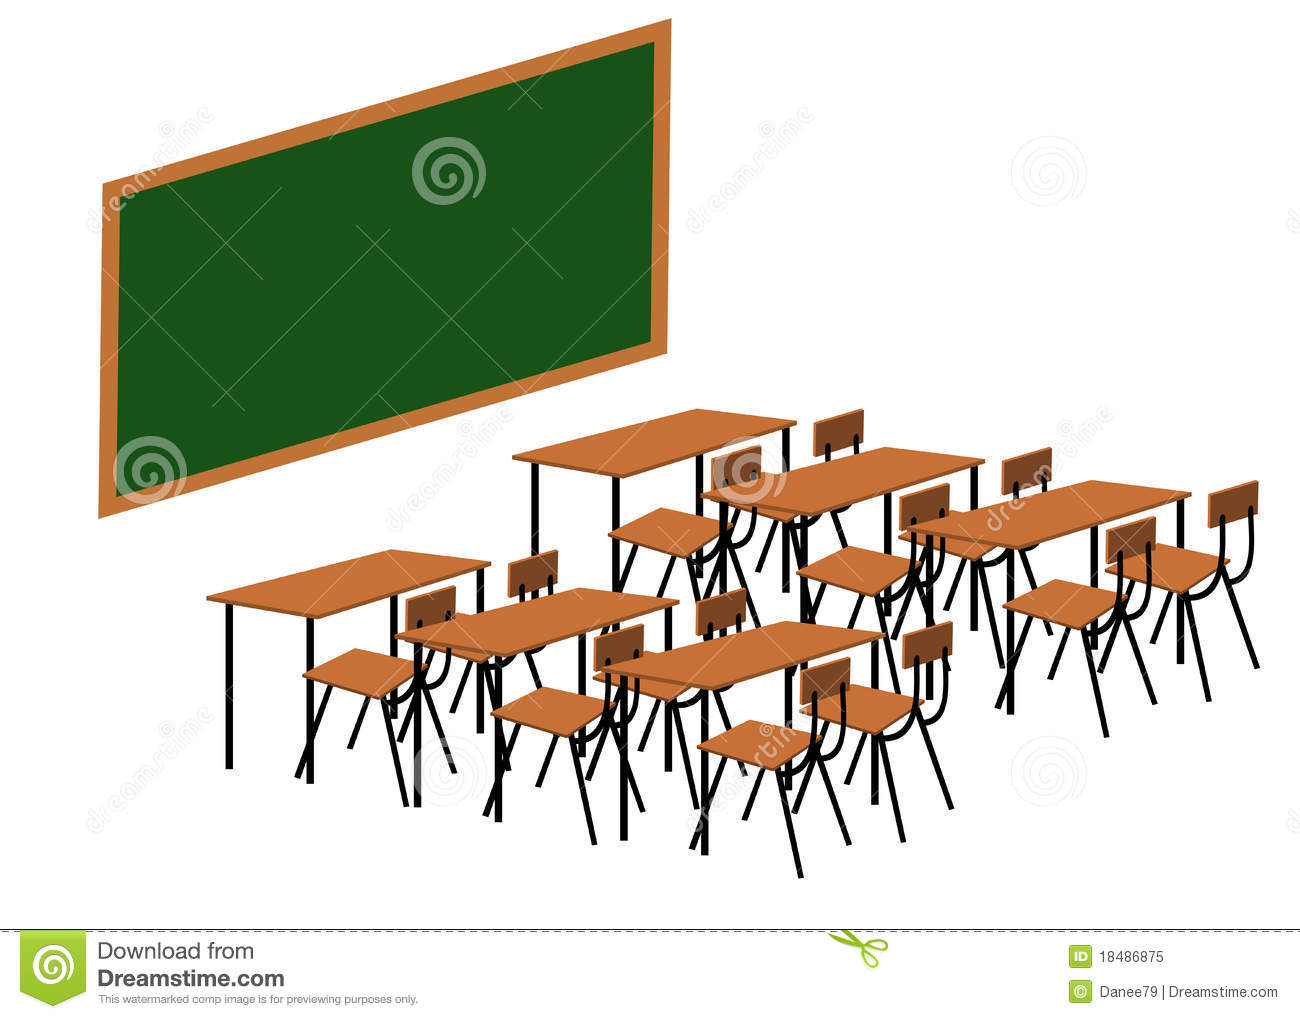 classroom table and chairs clipart.